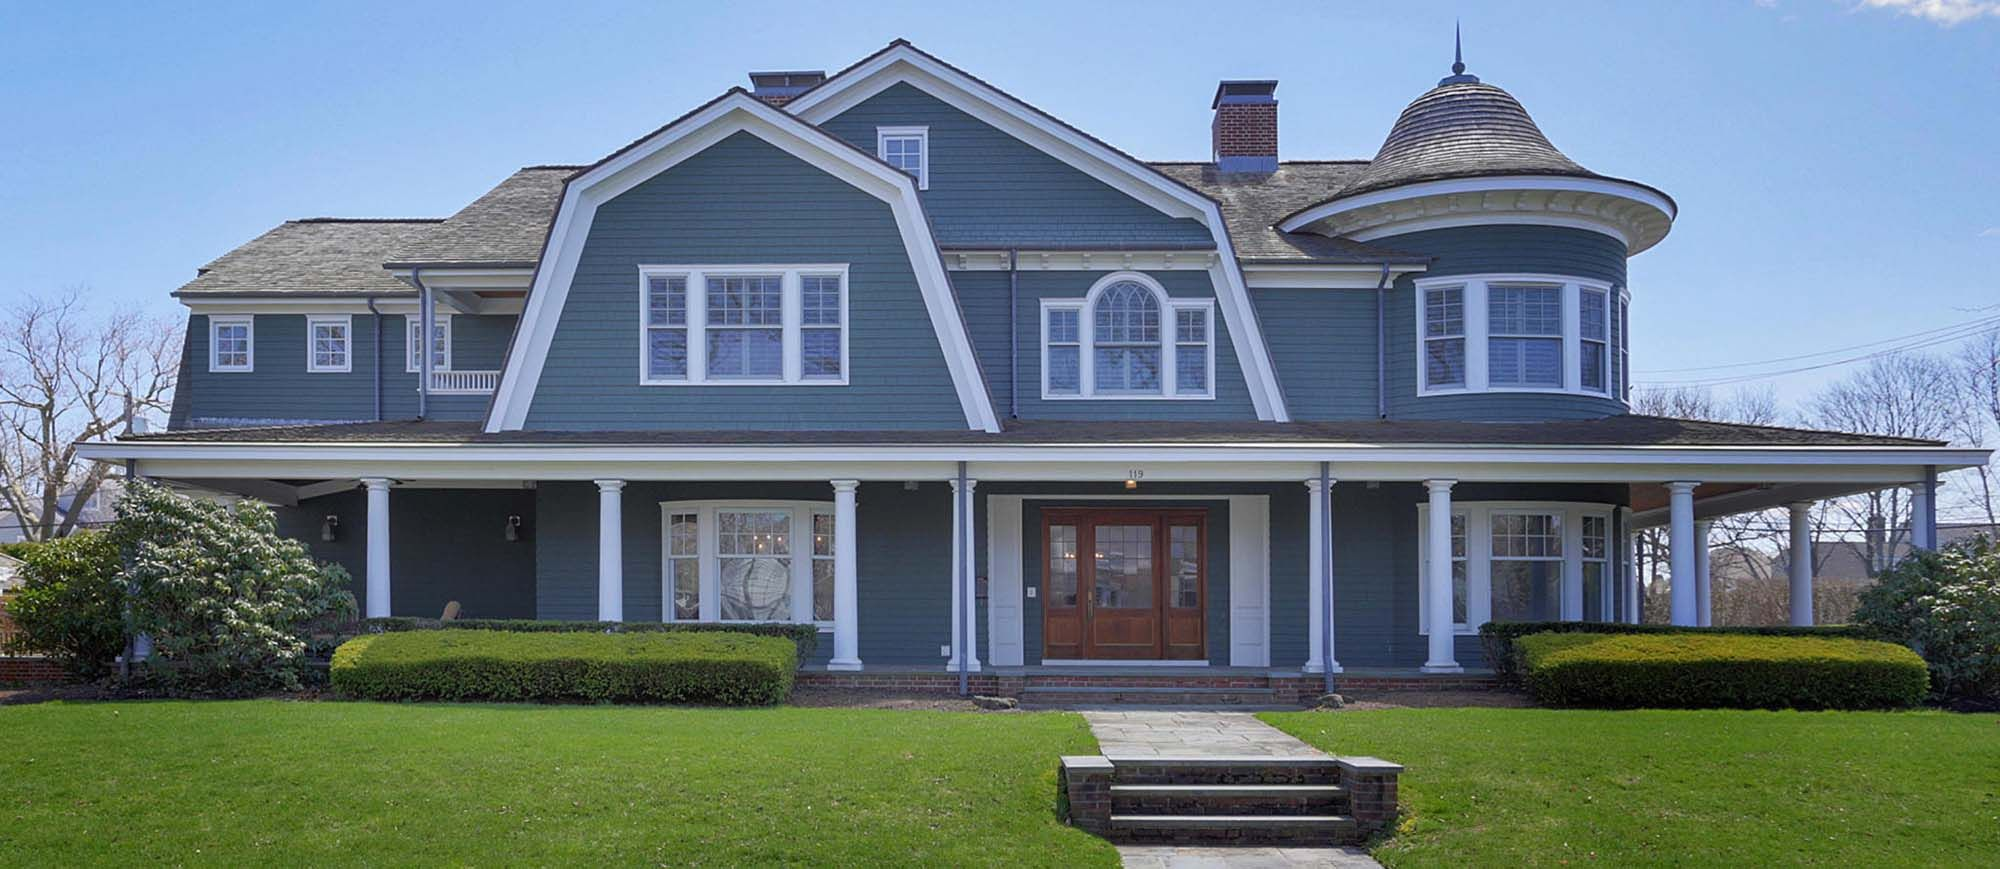 What Color Siding Goes With Red Brick Blue Siding With Red Brick Base Chimney And Stairs Gambrick Luxury Ho Blue Siding Colonial House Exteriors Brick Colors